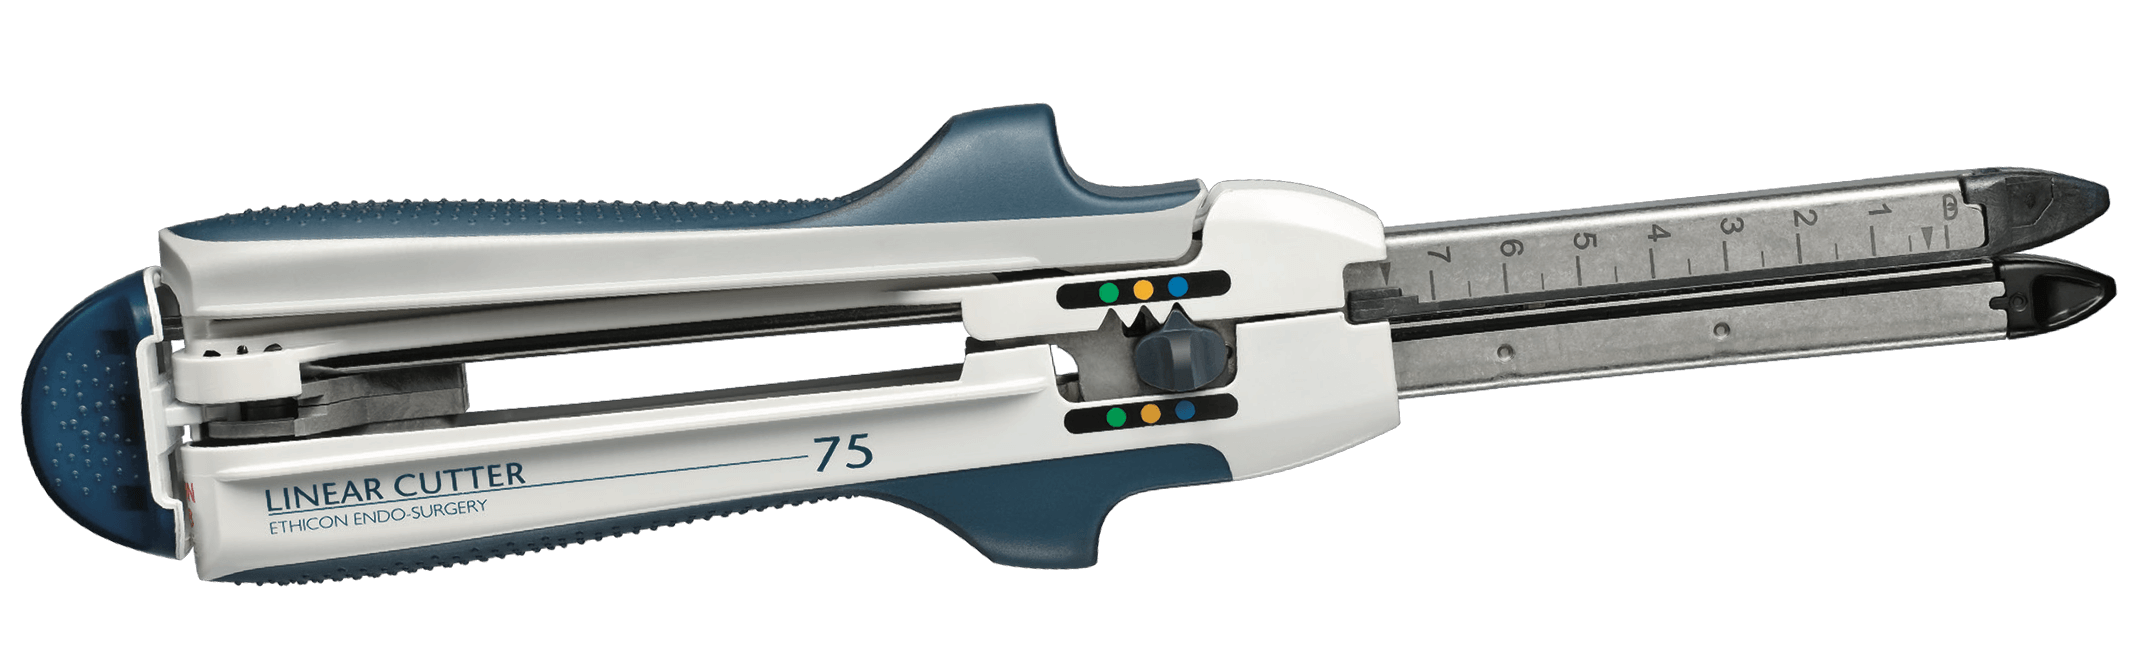 Ethicon Endo Cutter Related Keywords & Suggestions - Ethicon